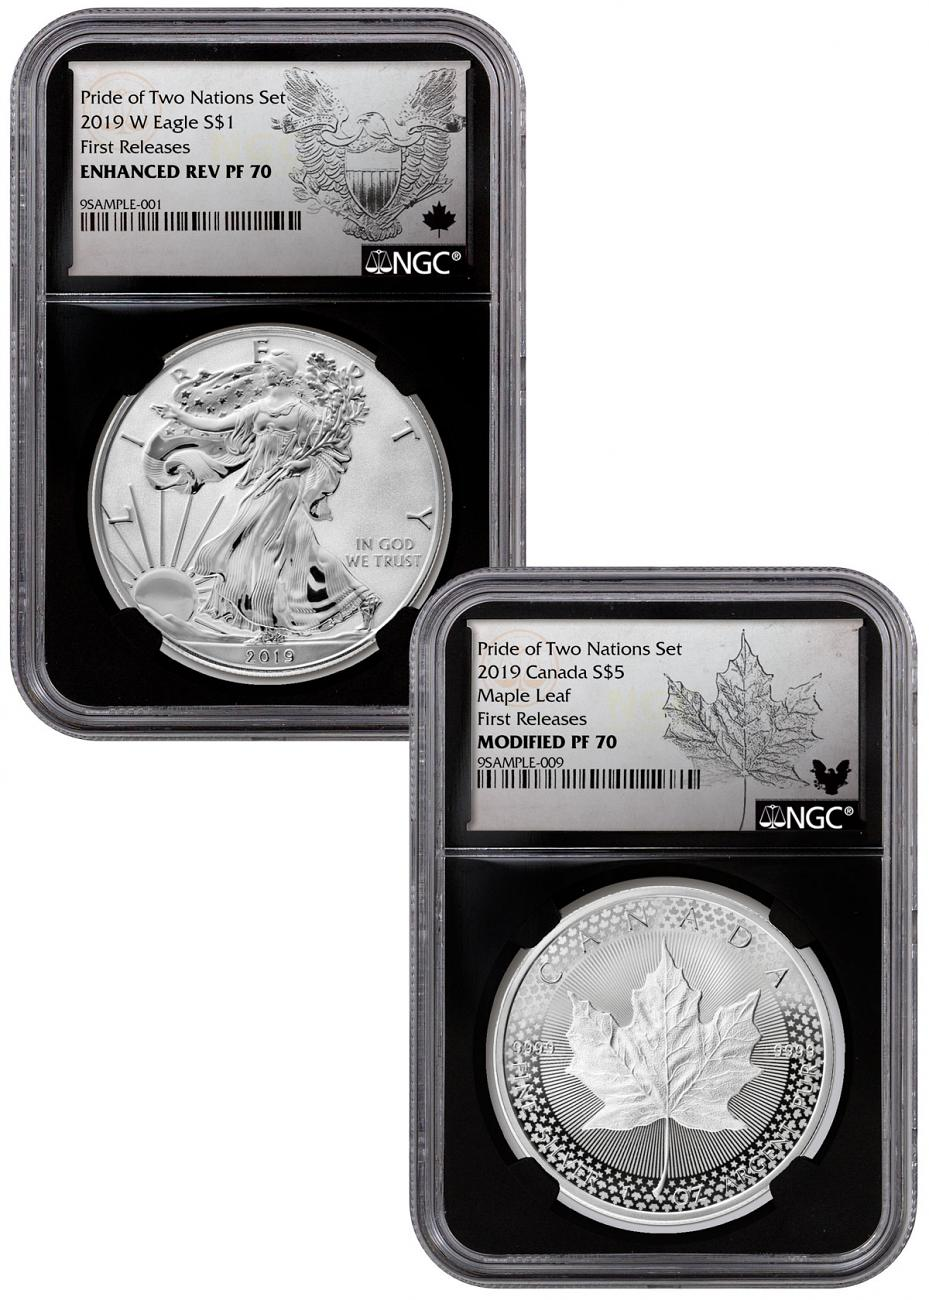 2019 United States & Canada 1 oz Silver Eagle & Maple Leaf - Pride of Two Nations 2-Coin Set NGC PF70 FR Black Core Holder Exclusive Eagle & Maple Labels with OGP